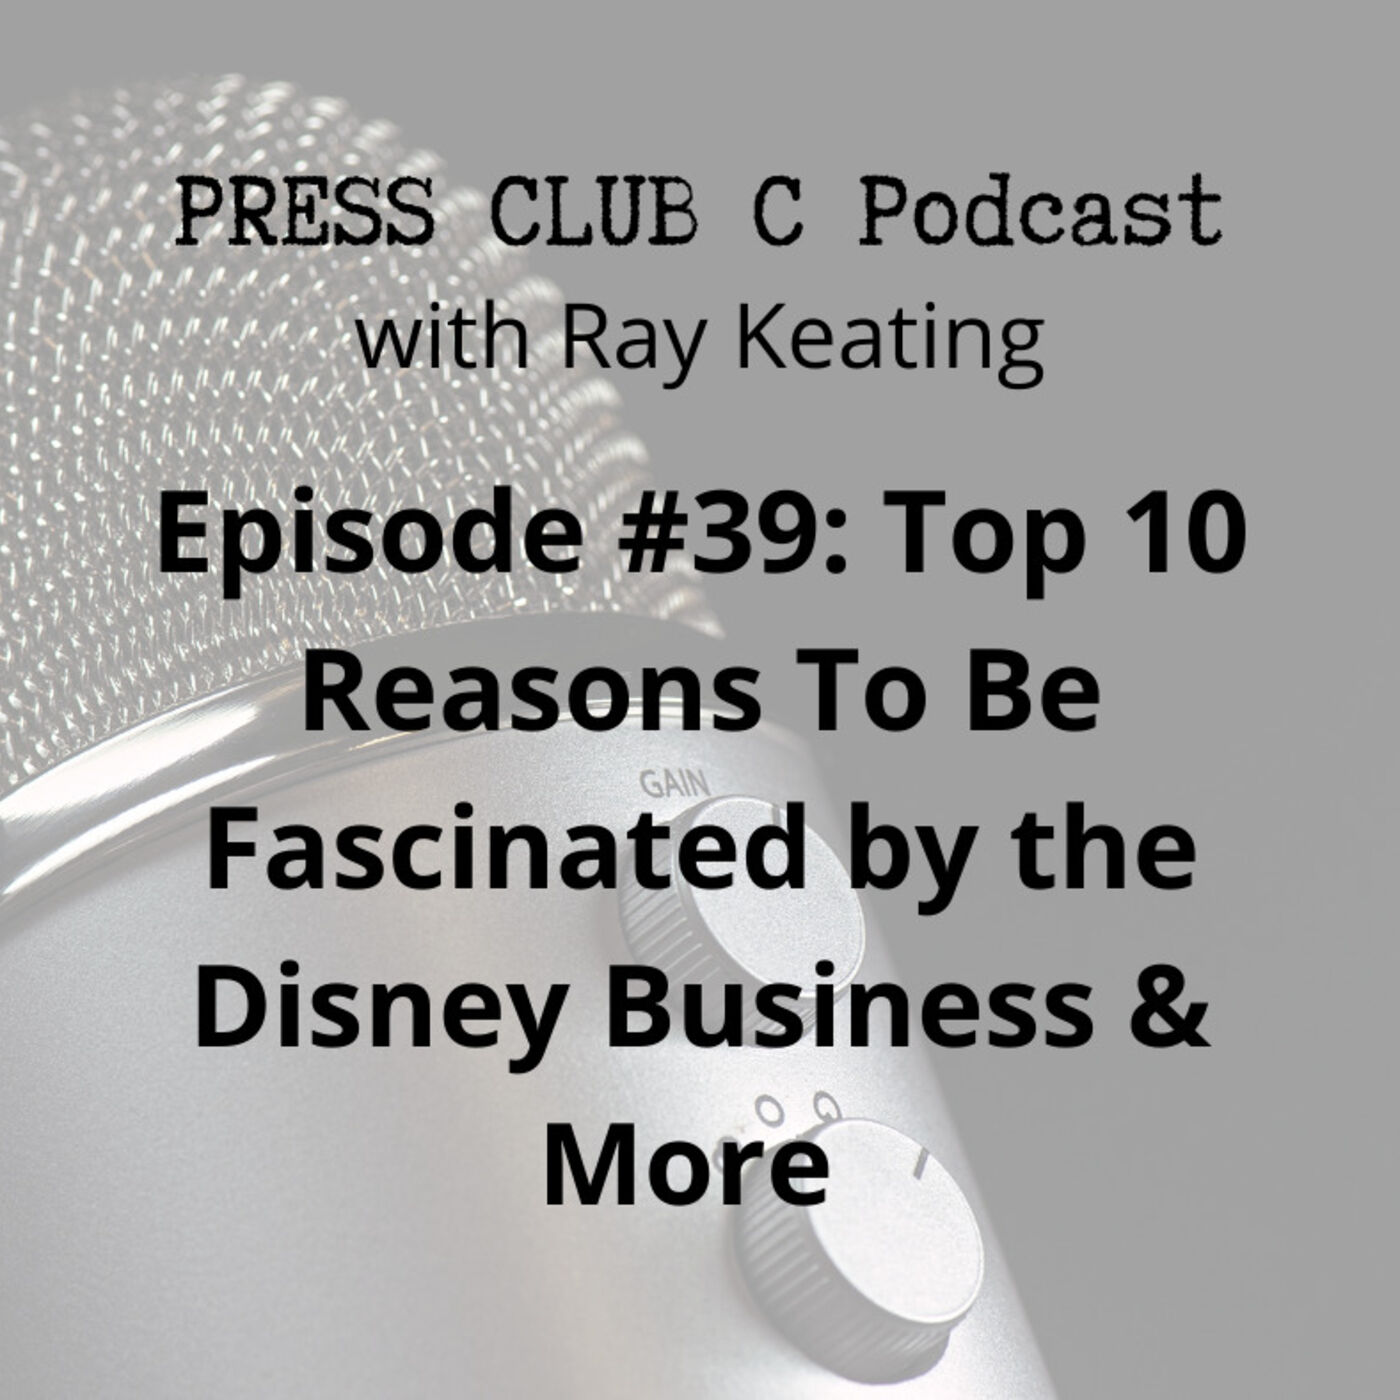 Episode #39: Top 10 Reasons To Be Fascinated by the Disney Business & More